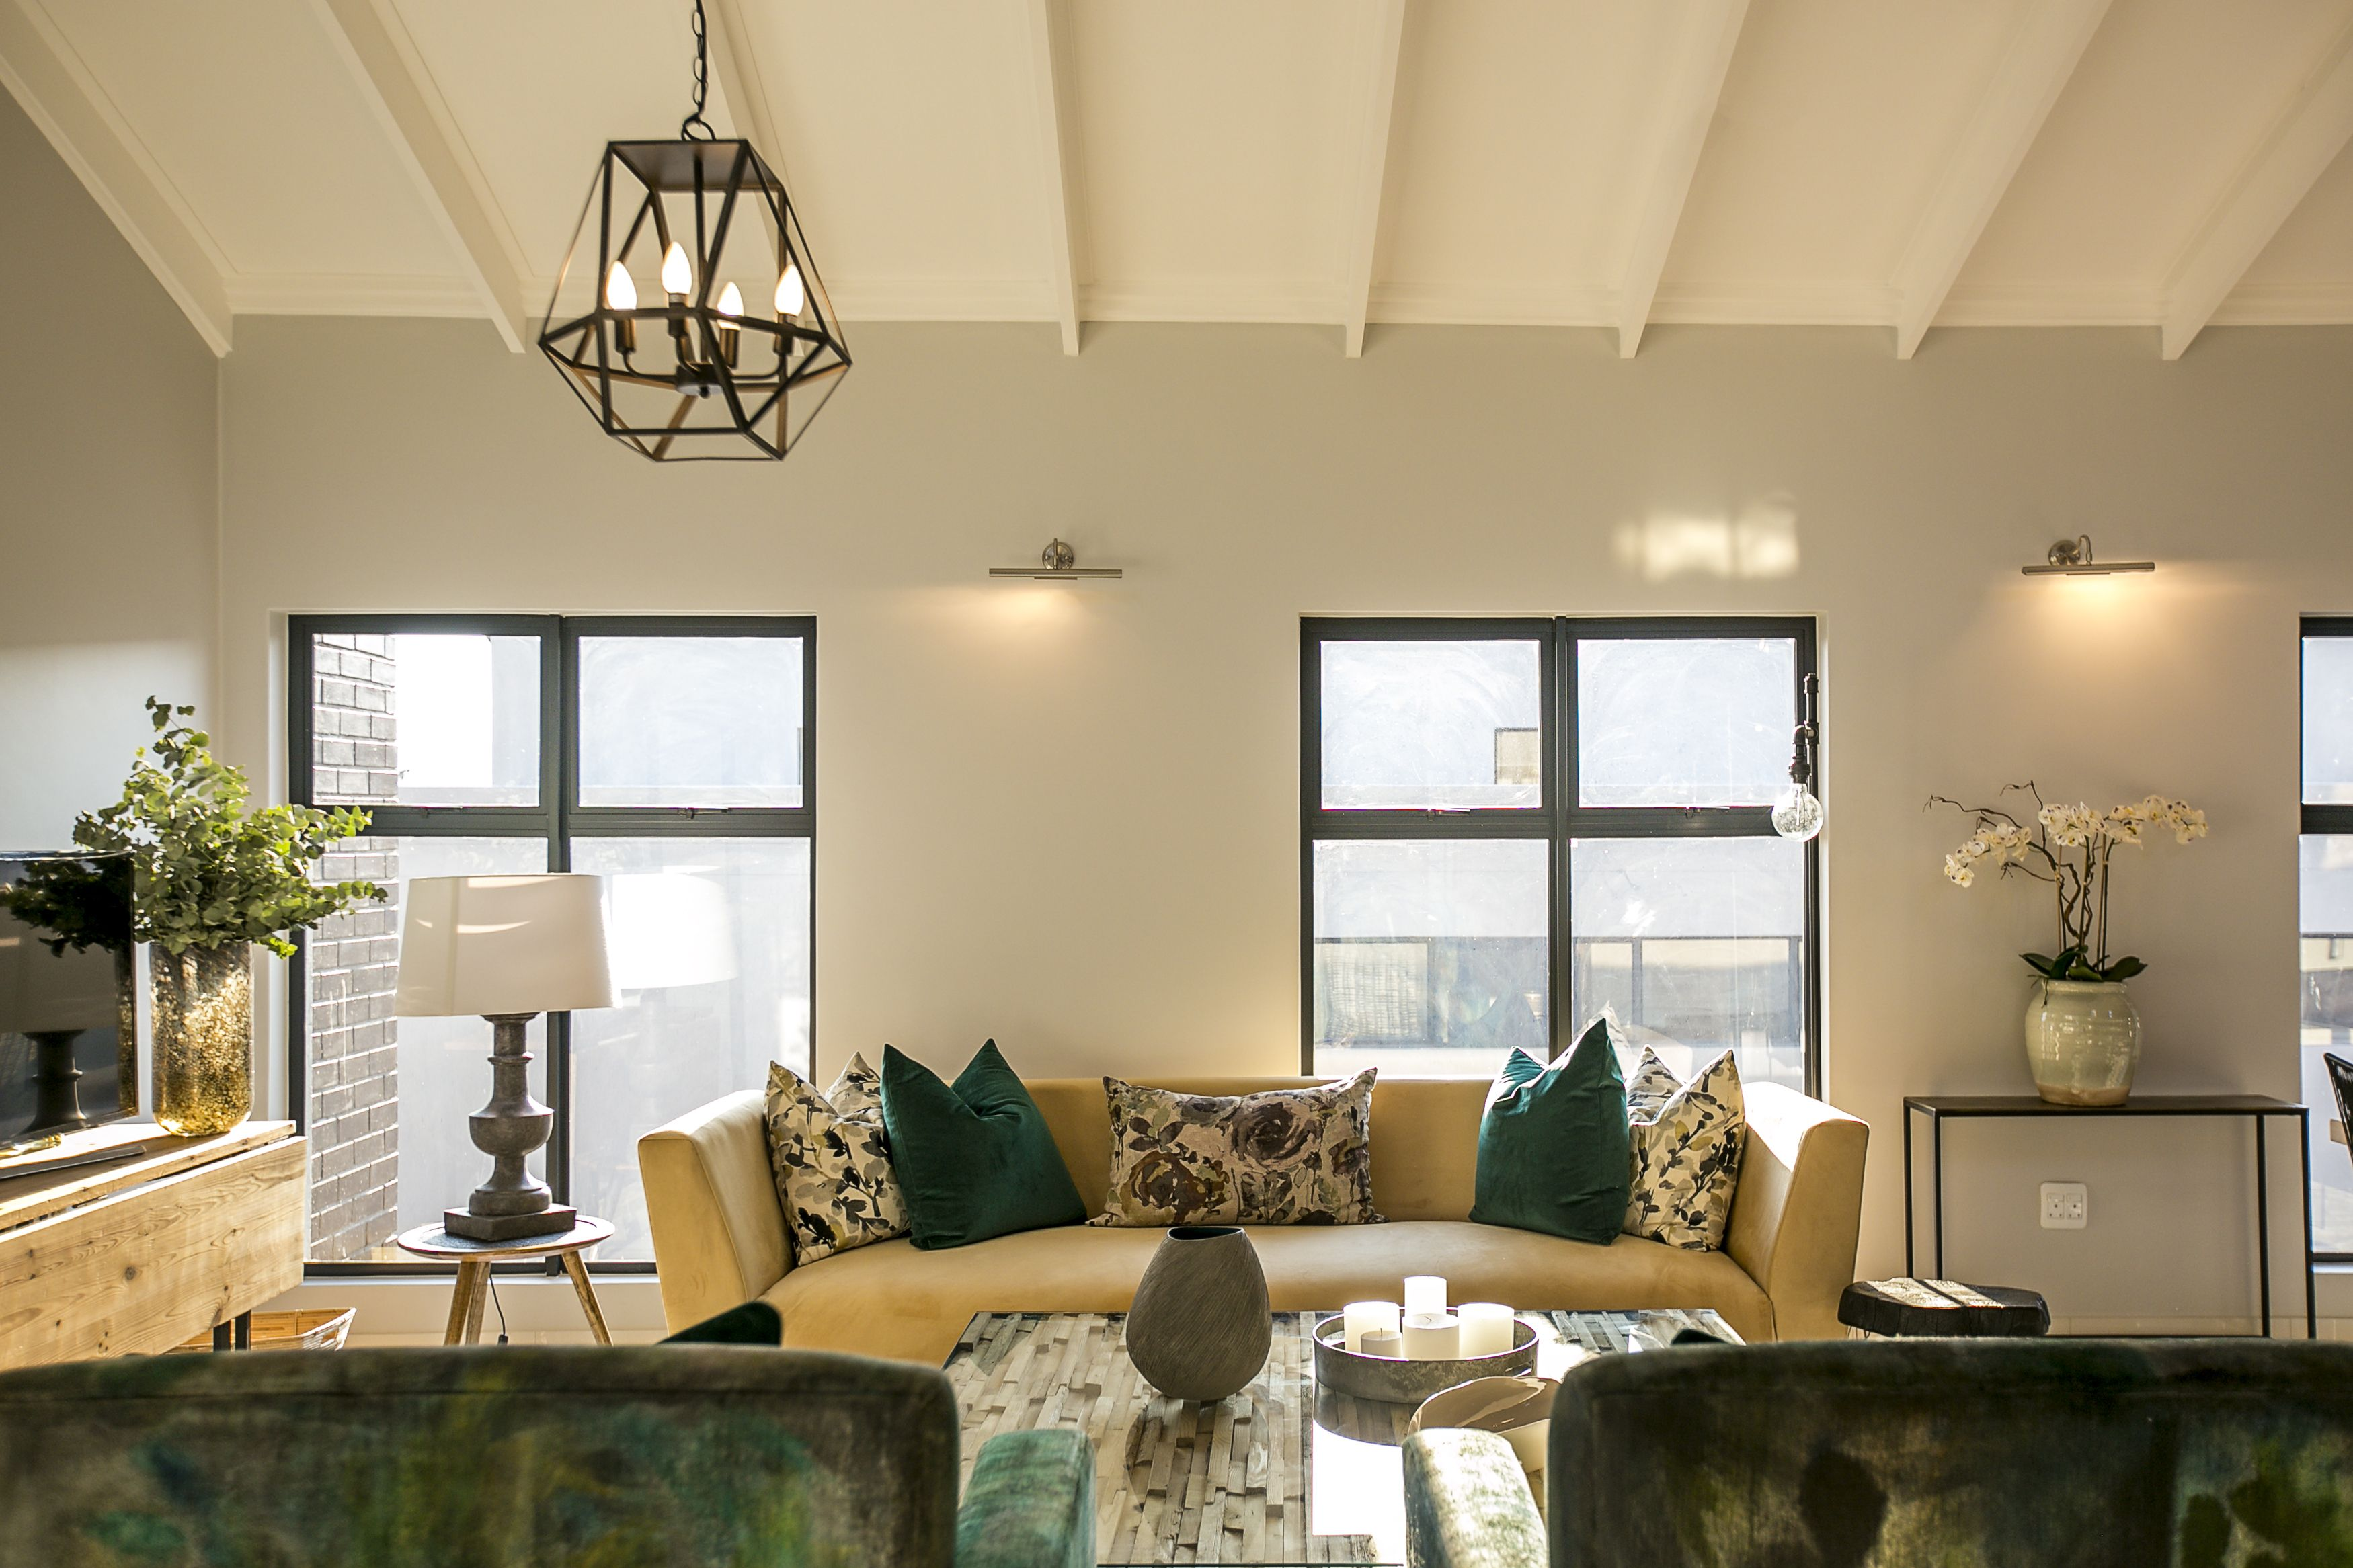 Interior design ideas luxury penthouses for sale in south africa shearwater living